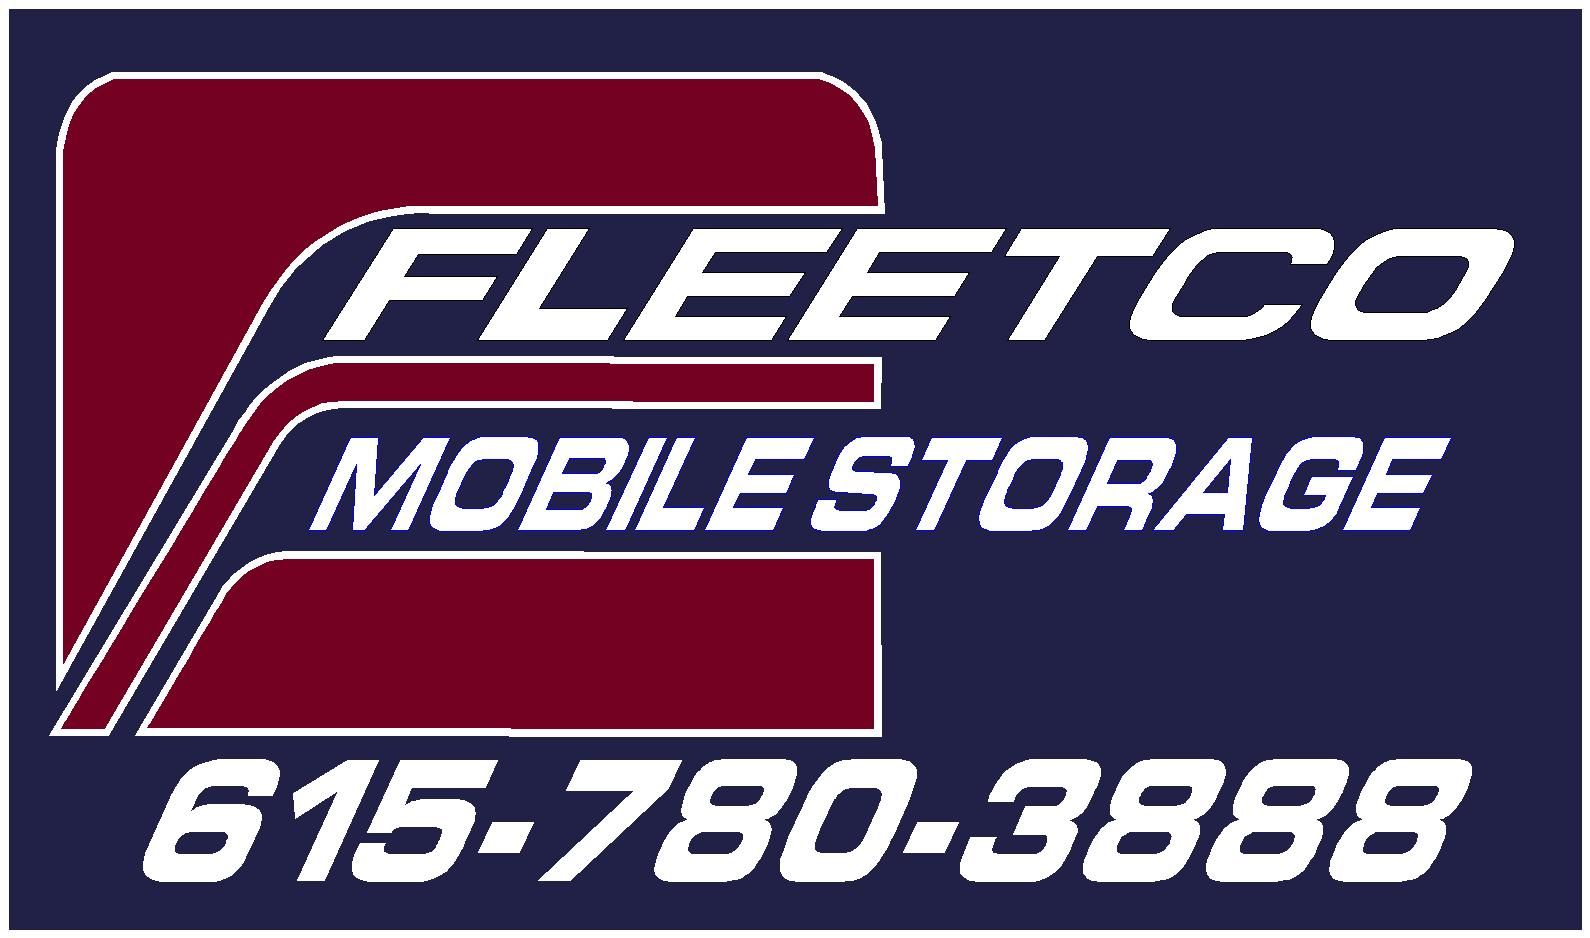 Fleetco Mobile Storage